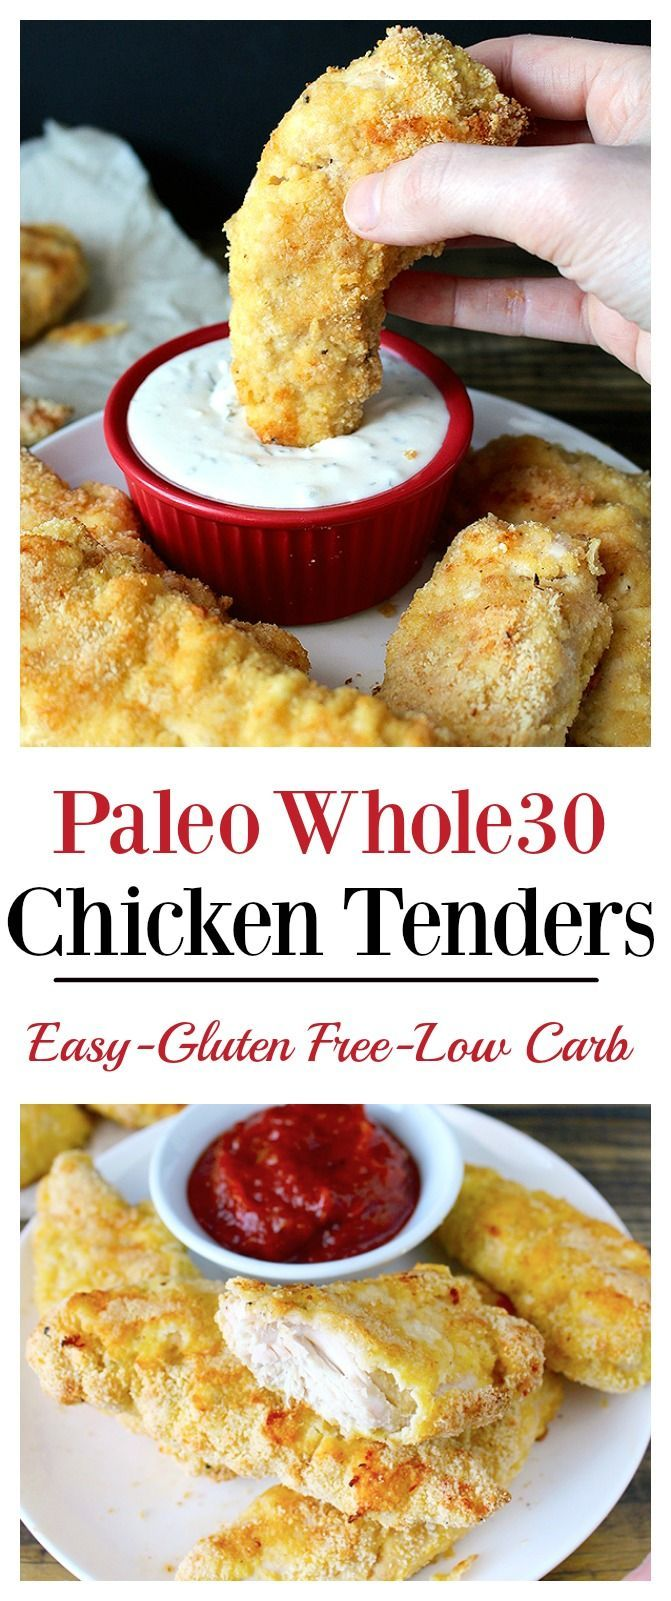 Paleo Whole30 Chicken Tenders easy quick and so delicious The popular meal   Paleo Whole30 Chicken Tenders easy quick and so delicious The popular meal made gluten free d...